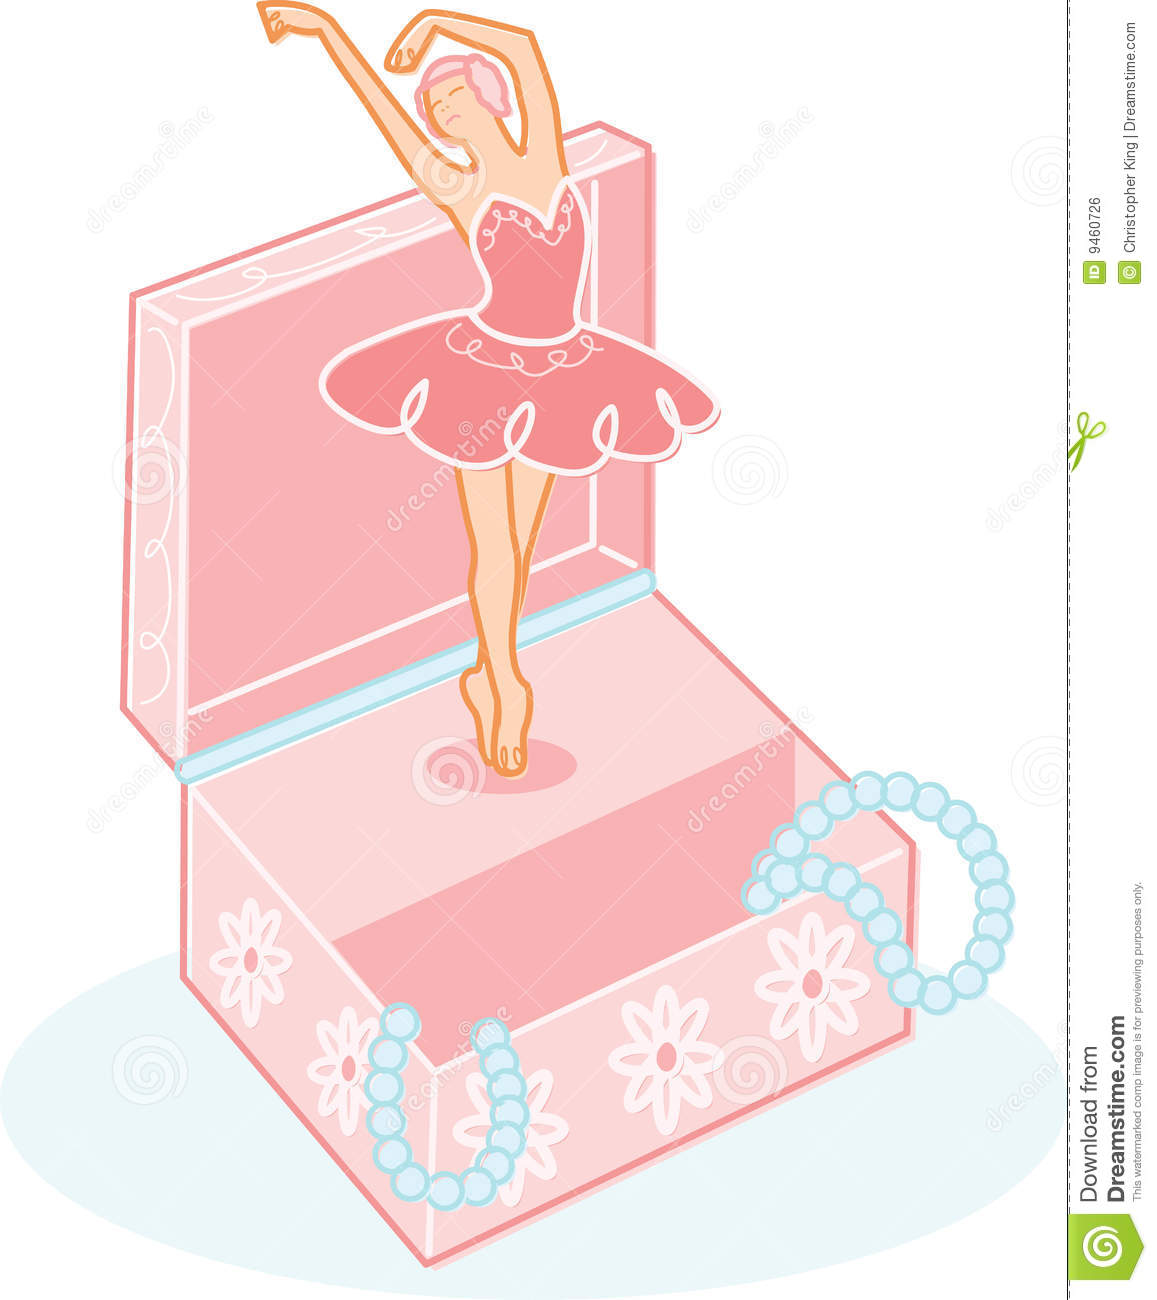 Cute Ballerina Jewelry Box Illustration Stock Vector Illustration